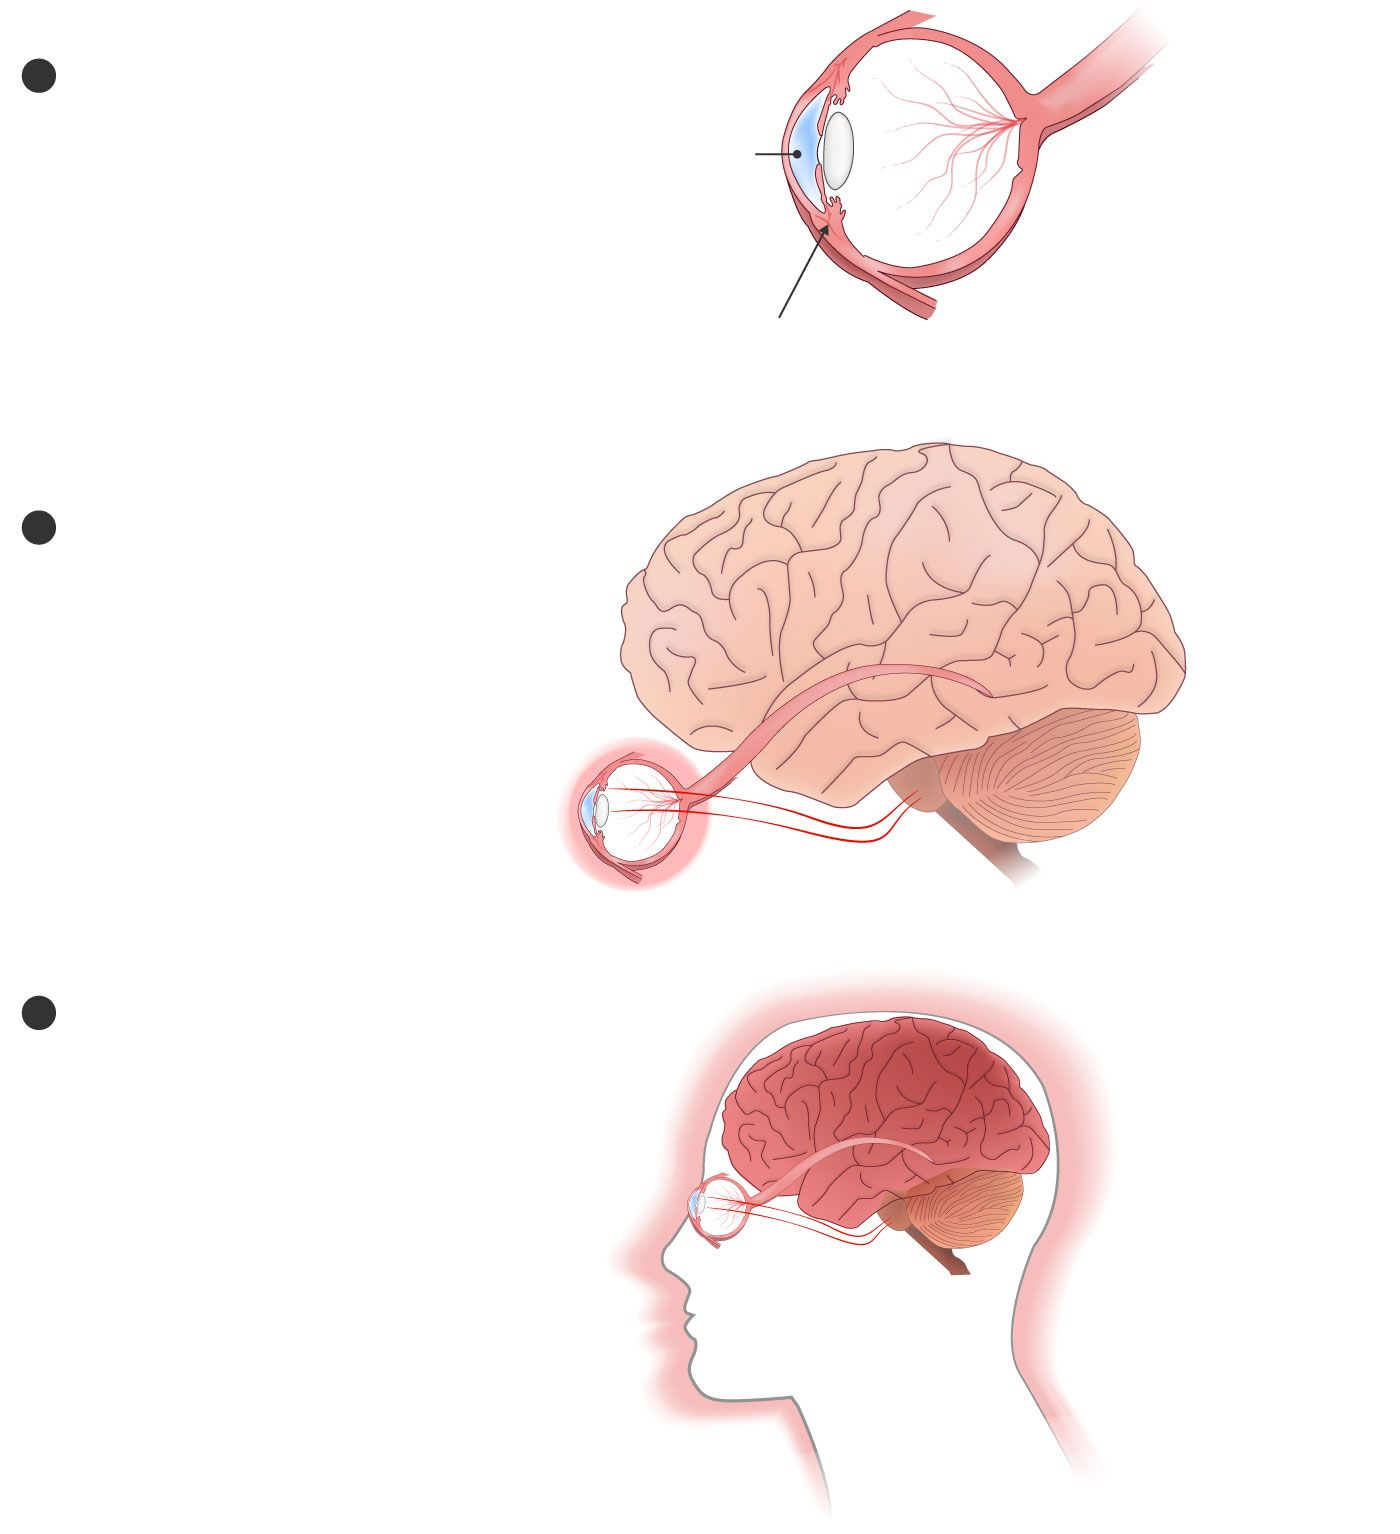 hight resolution of 3 over time pain centers in the brain can start firing on their own creating phantom pain in the cornea and areas other than the eye